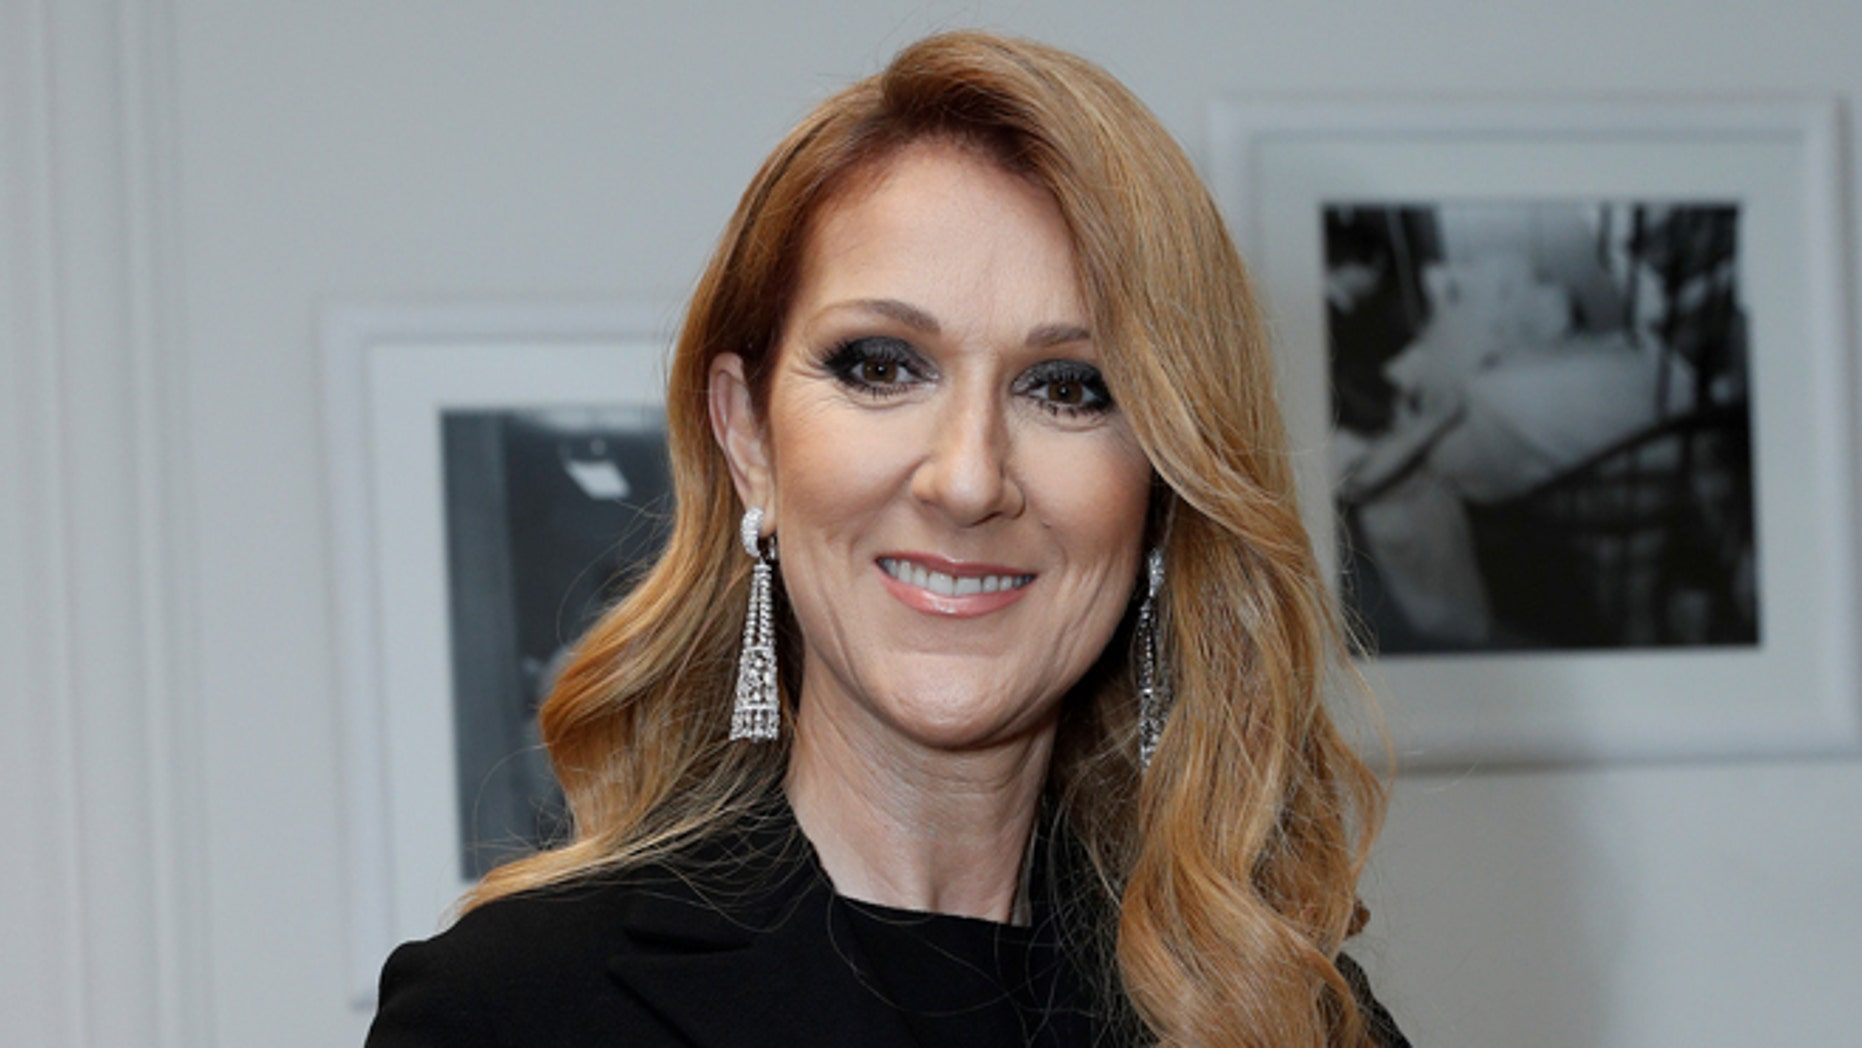 Celine Dion will be joining 'The Voice' as an advisor.